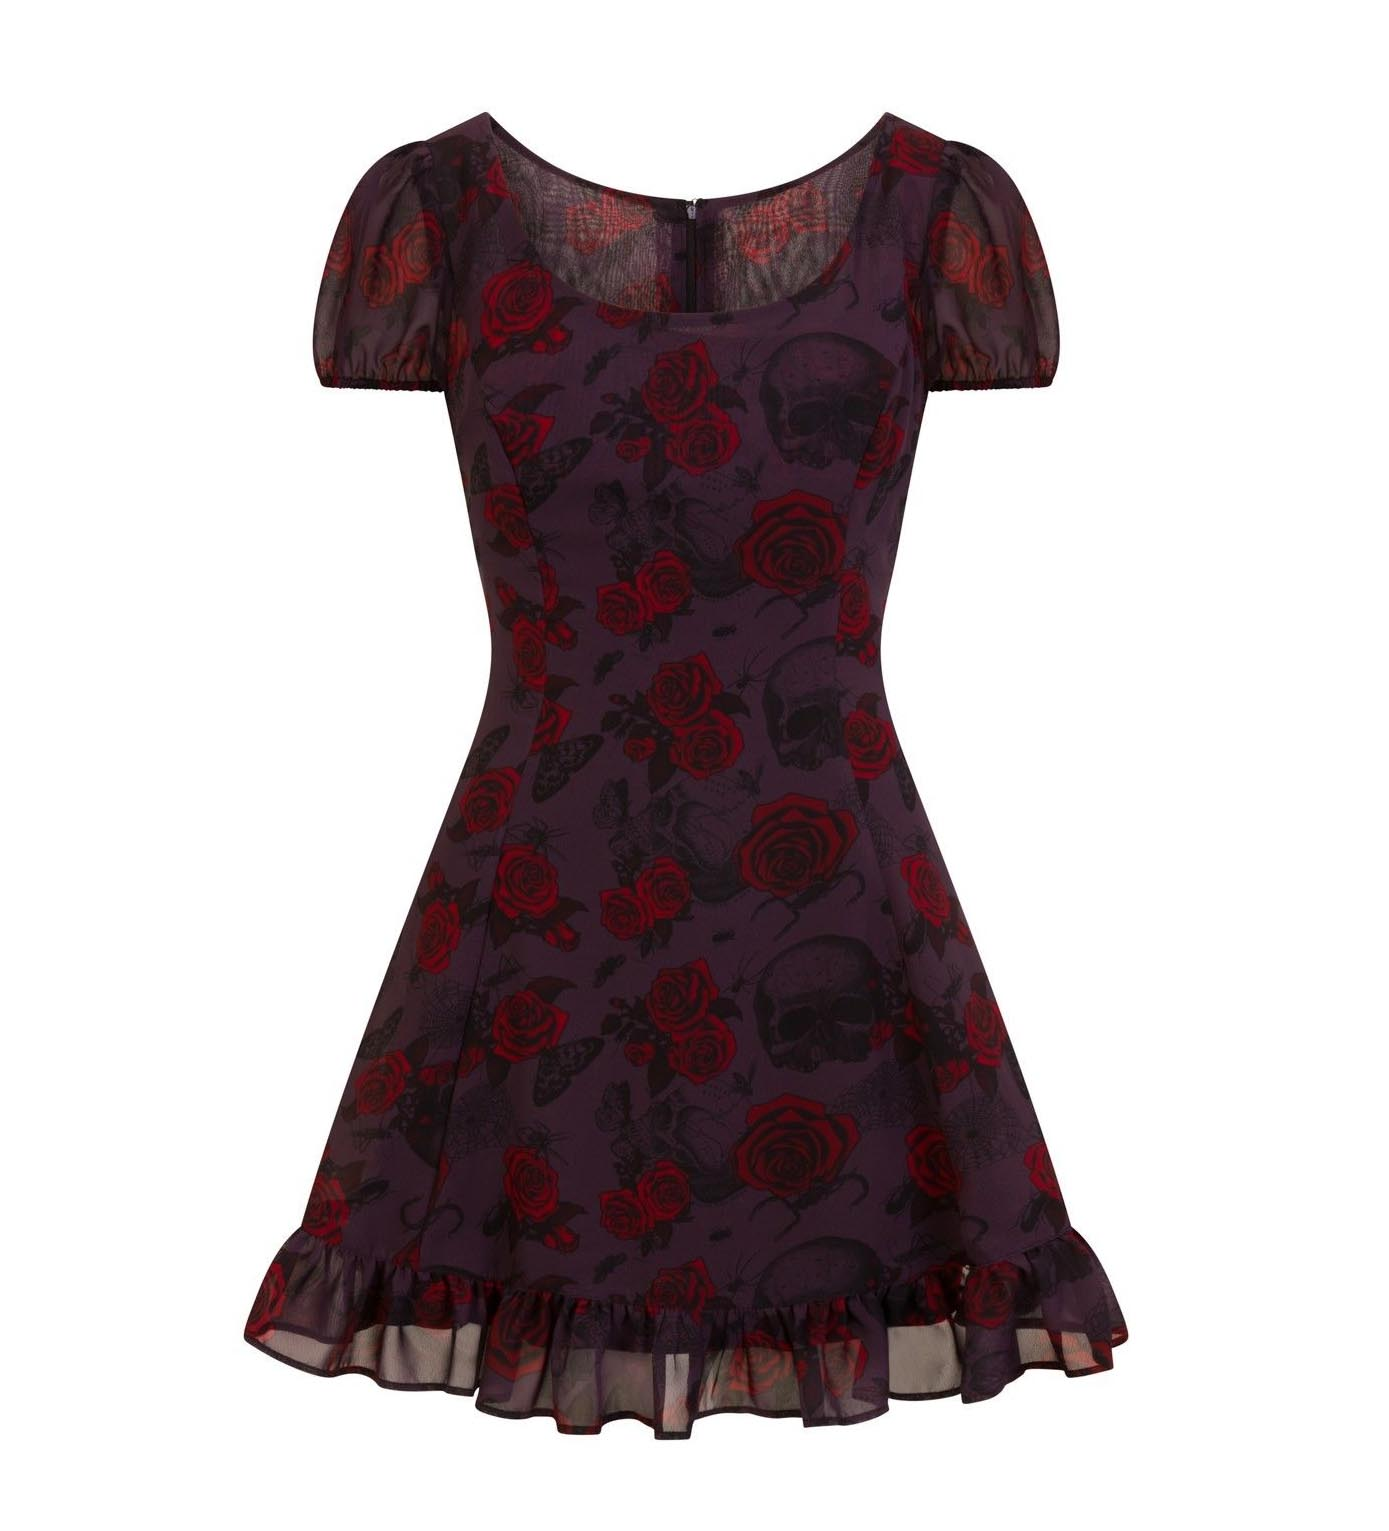 Hell-Bunny-Goth-Floaty-Mini-Dress-BUGS-amp-ROSES-Skulls-Butterfly-Purple-All-Sizes thumbnail 41